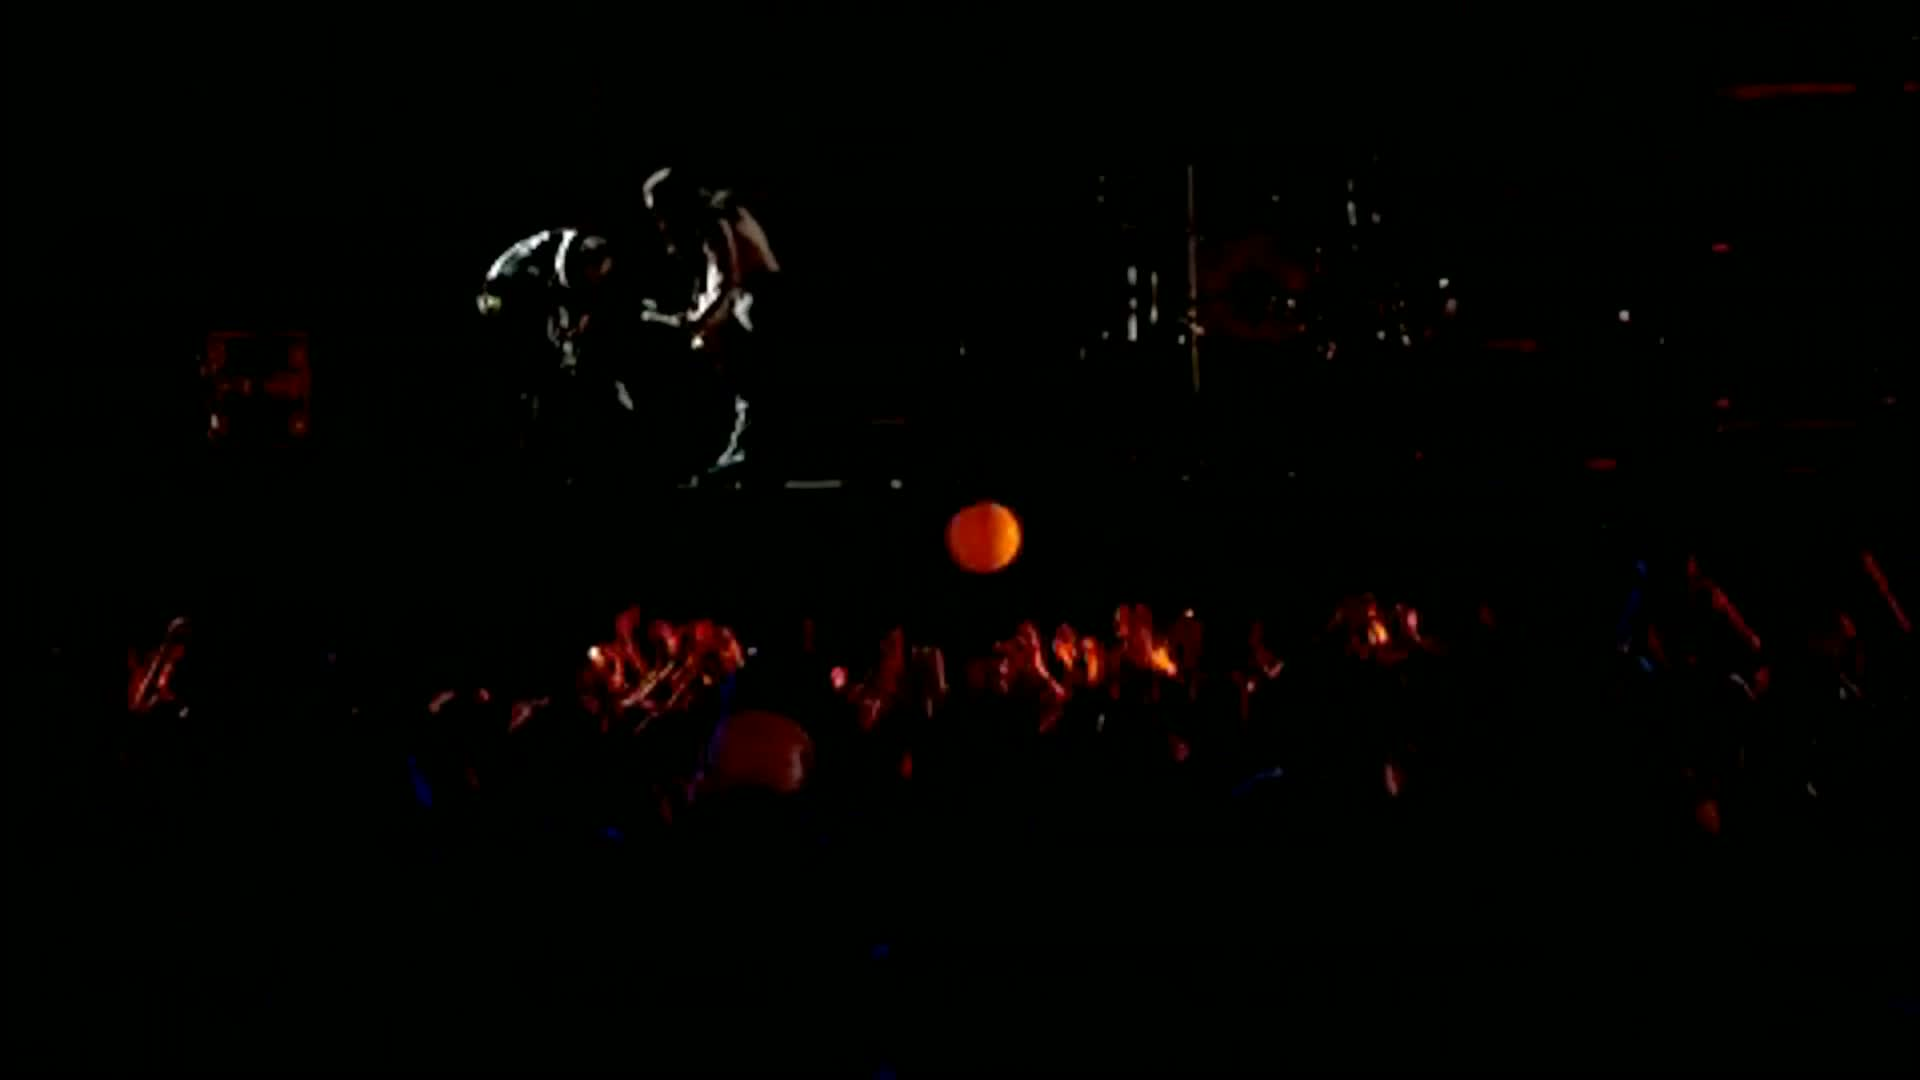 red hot chili peppers - californication - live.